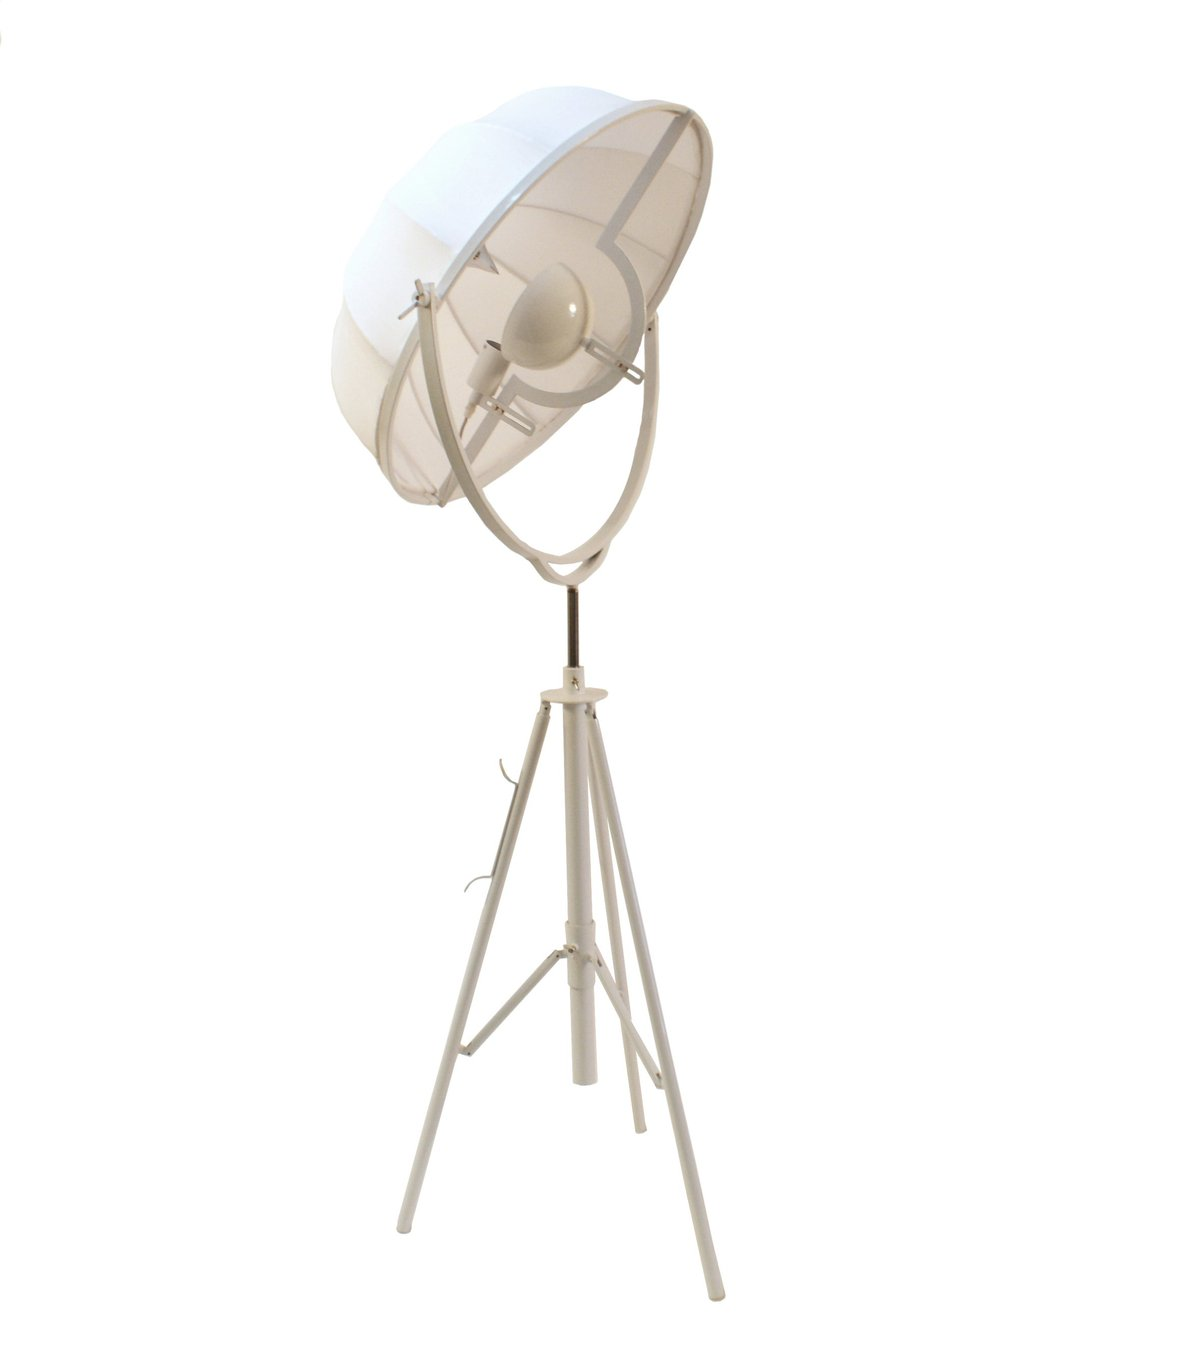 BM191461 - Adjustable Metal Floor Lamp With Fabric Shade And Tripod Feet, Large, White